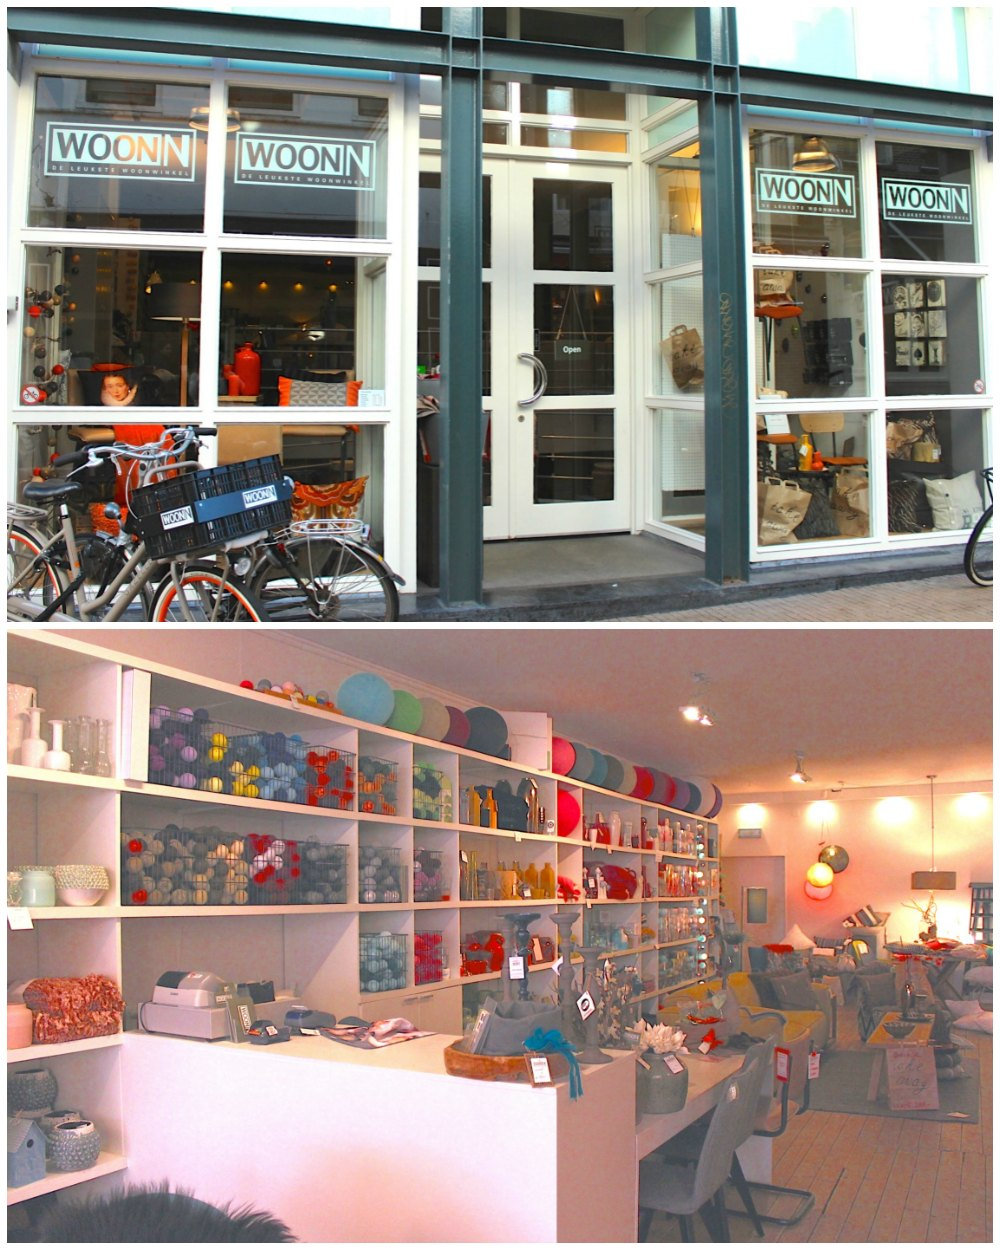 Lots of cushions at WOONN in Groningen |curlytraveller.com